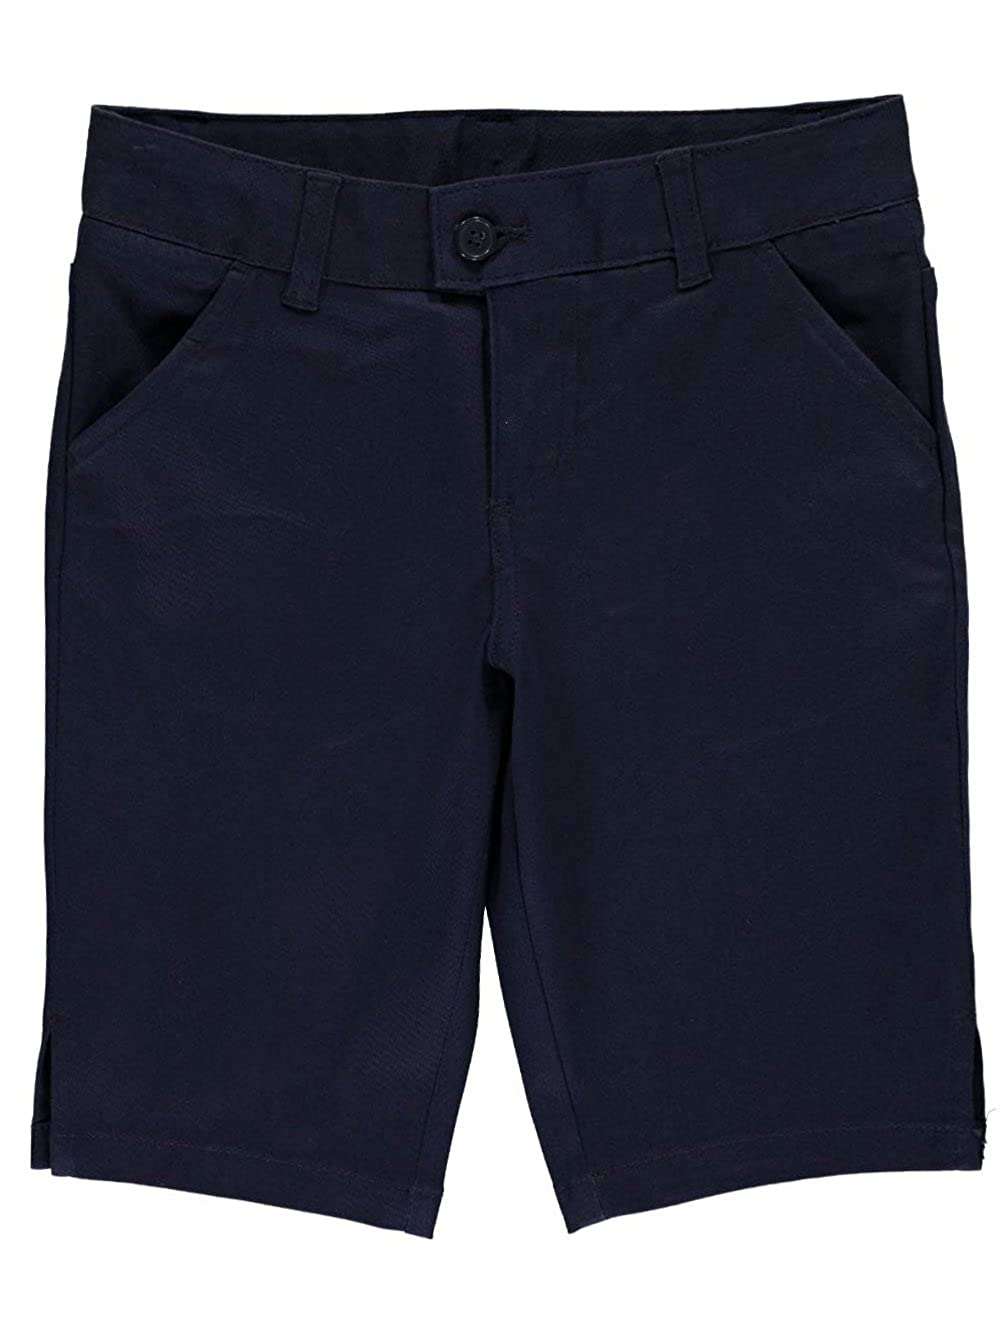 French Toast Big Girls' Flat Front Twill Bermuda Shorts - Navy, 18